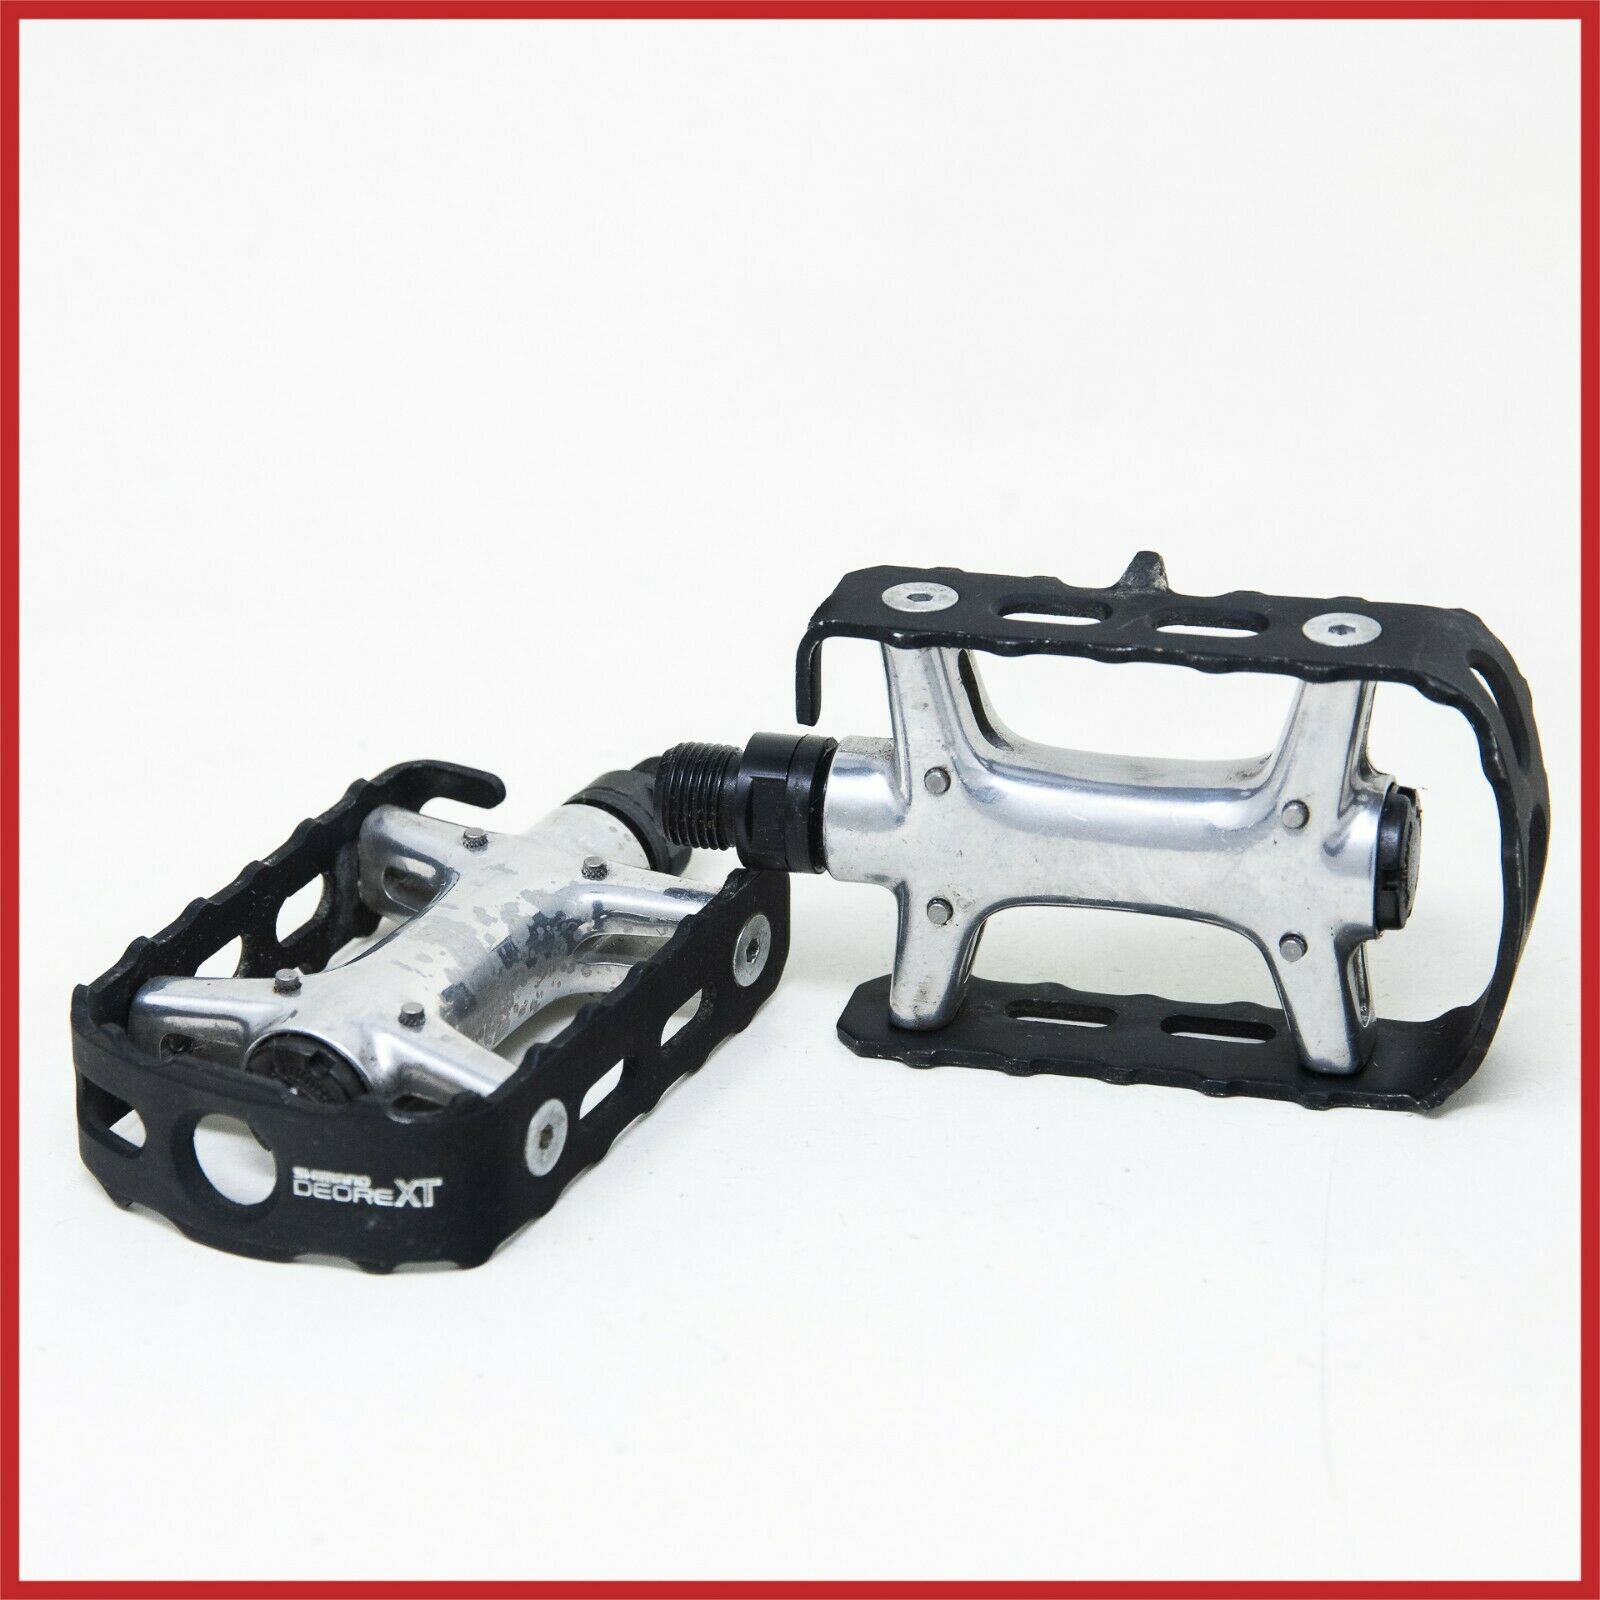 NOS SHIMANO XT QUILL PEDALS PDM731 MTB 916x20 MOUNTAIN BIKE BICYCLE VINTAGE